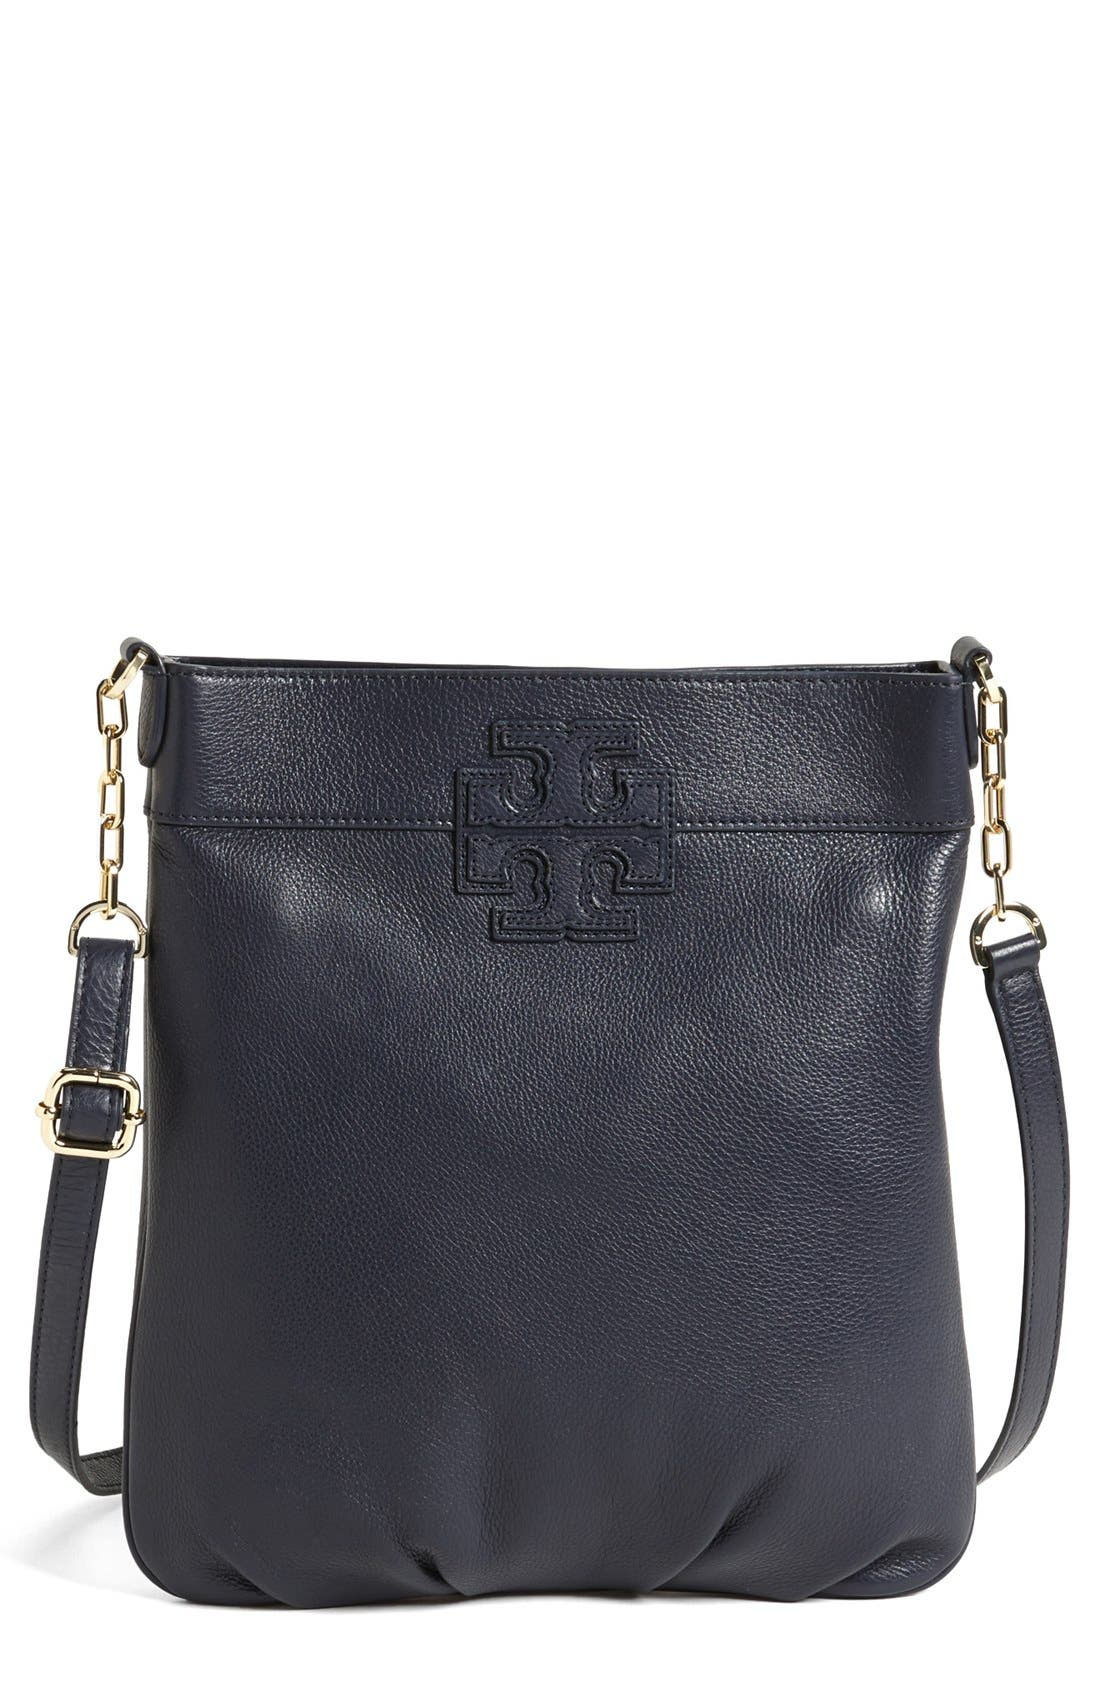 Main Image - Tory Burch 'Stacked T' Leather Book Bag